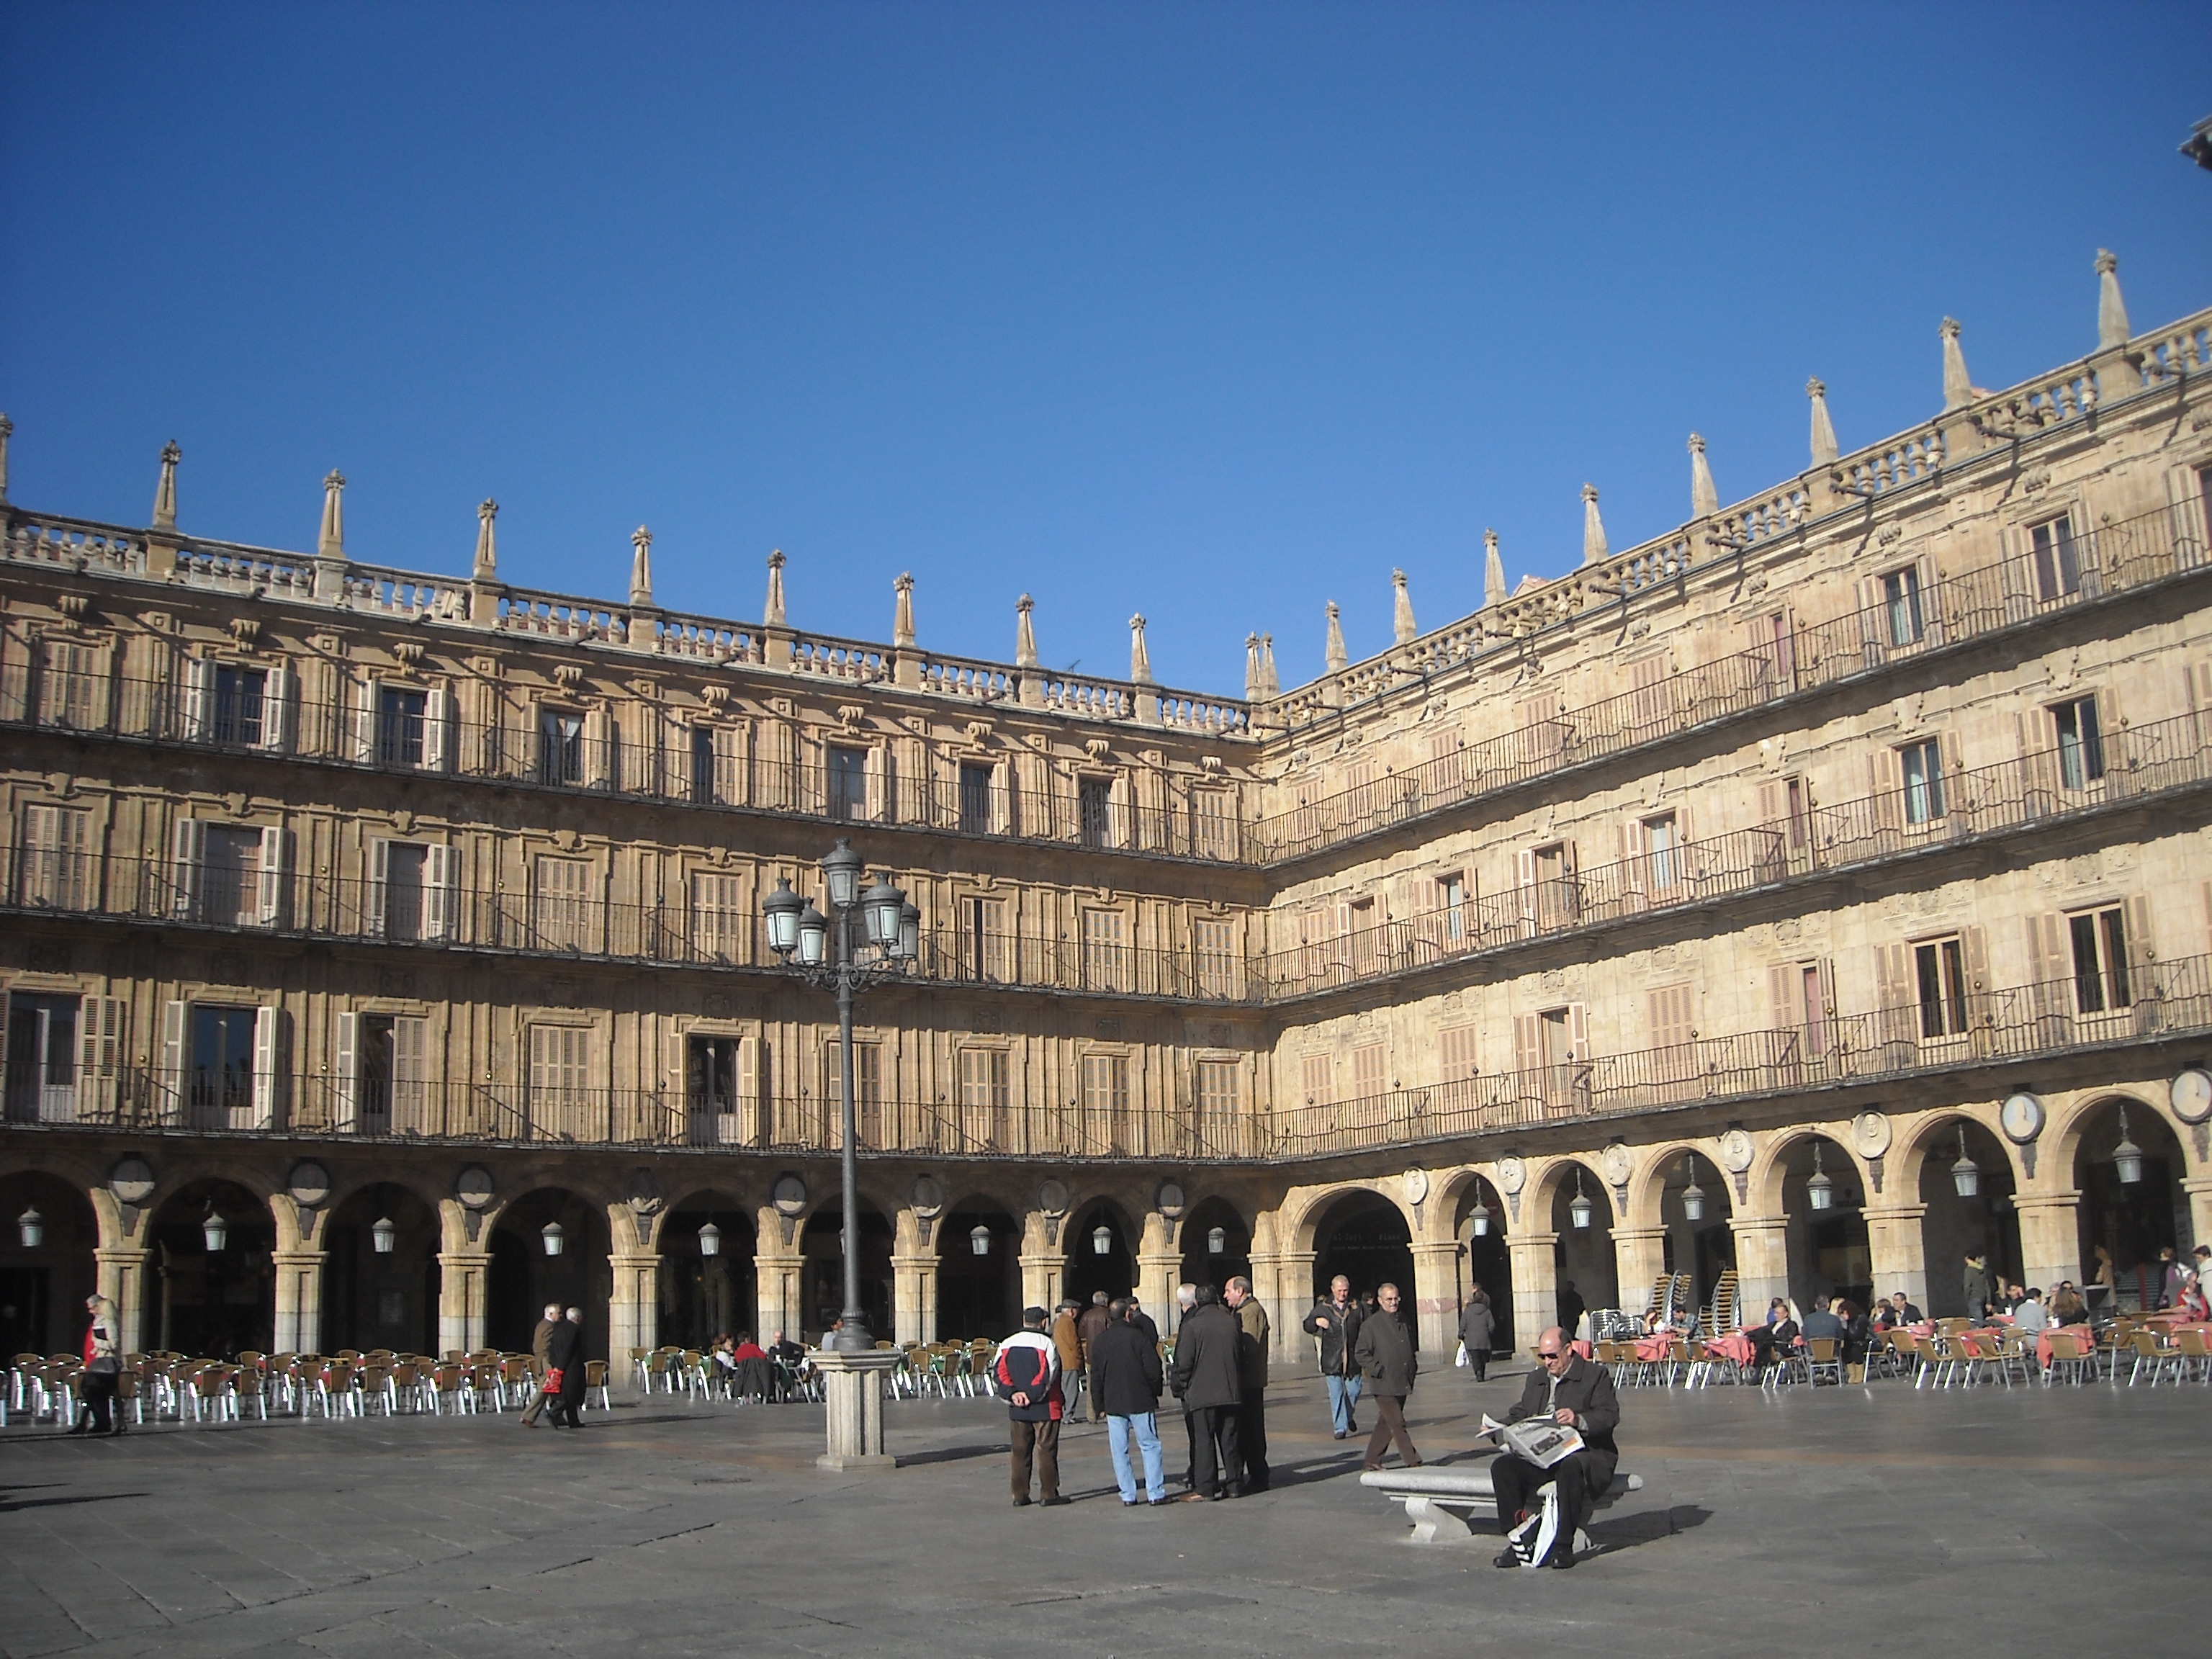 File:Plaza Mayor de Salamanca.JPG